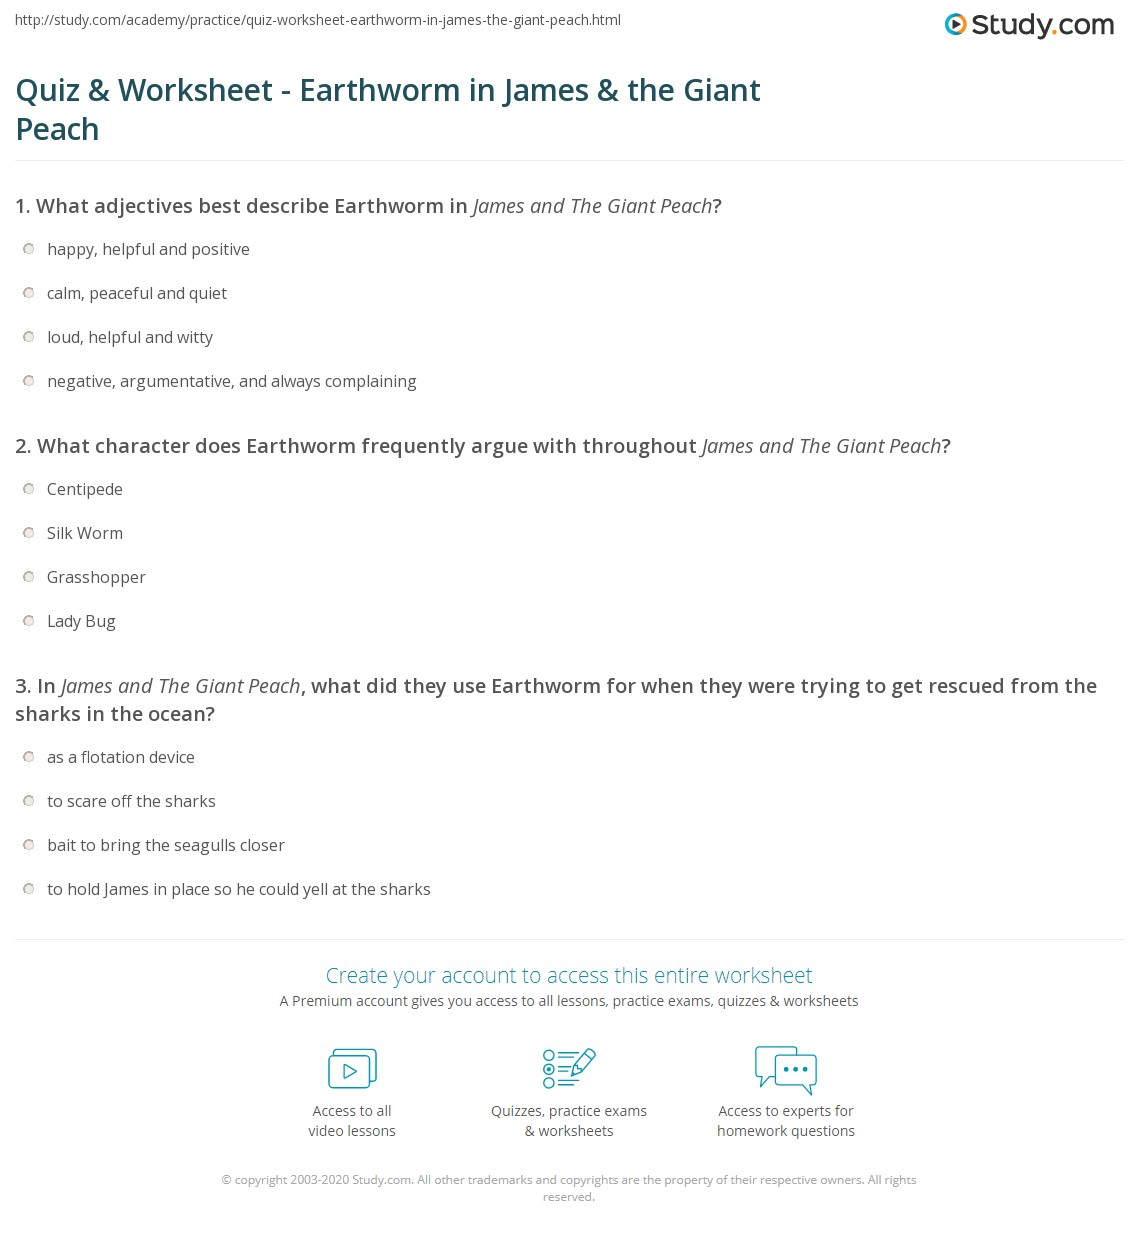 Quiz Worksheet Earthworm in James the Giant Peach – Earthworm Worksheet Answers